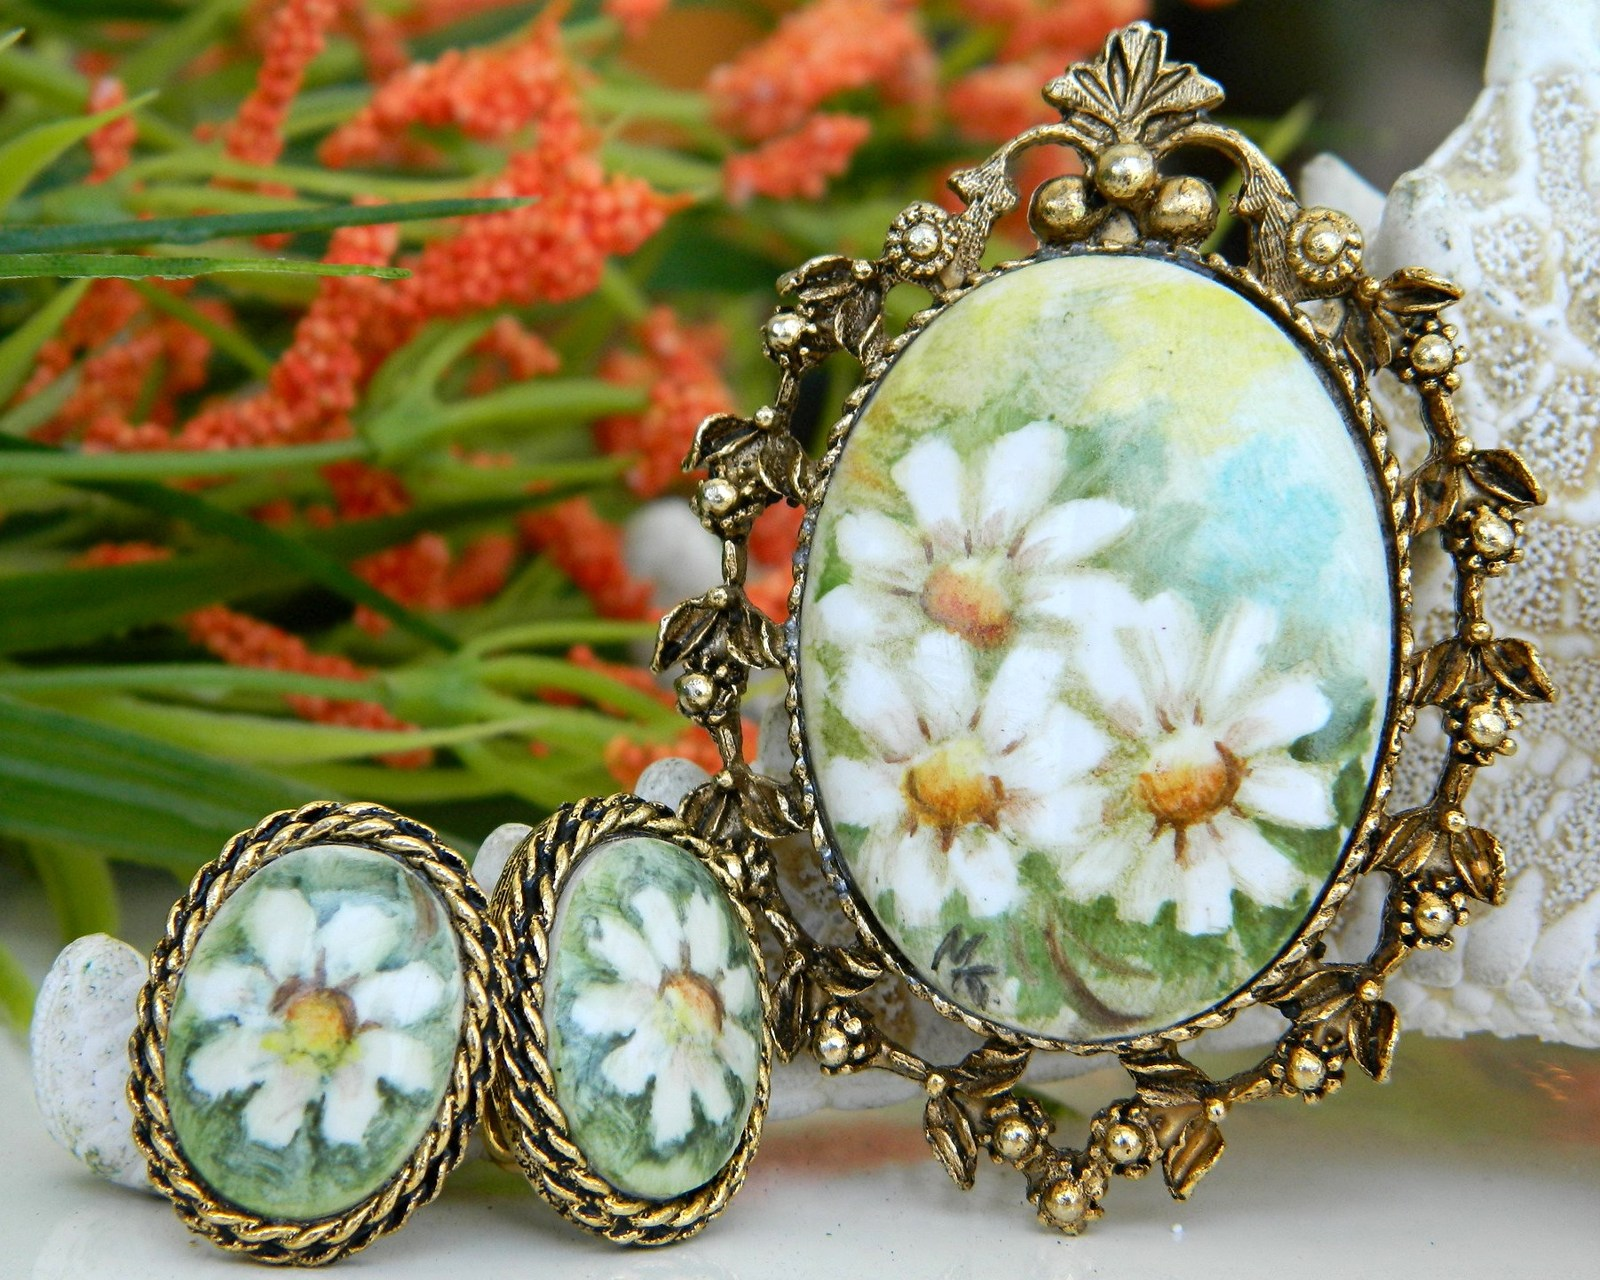 Vintage_daisy_hand_painted_porcelain_brooch_pendant_earrings